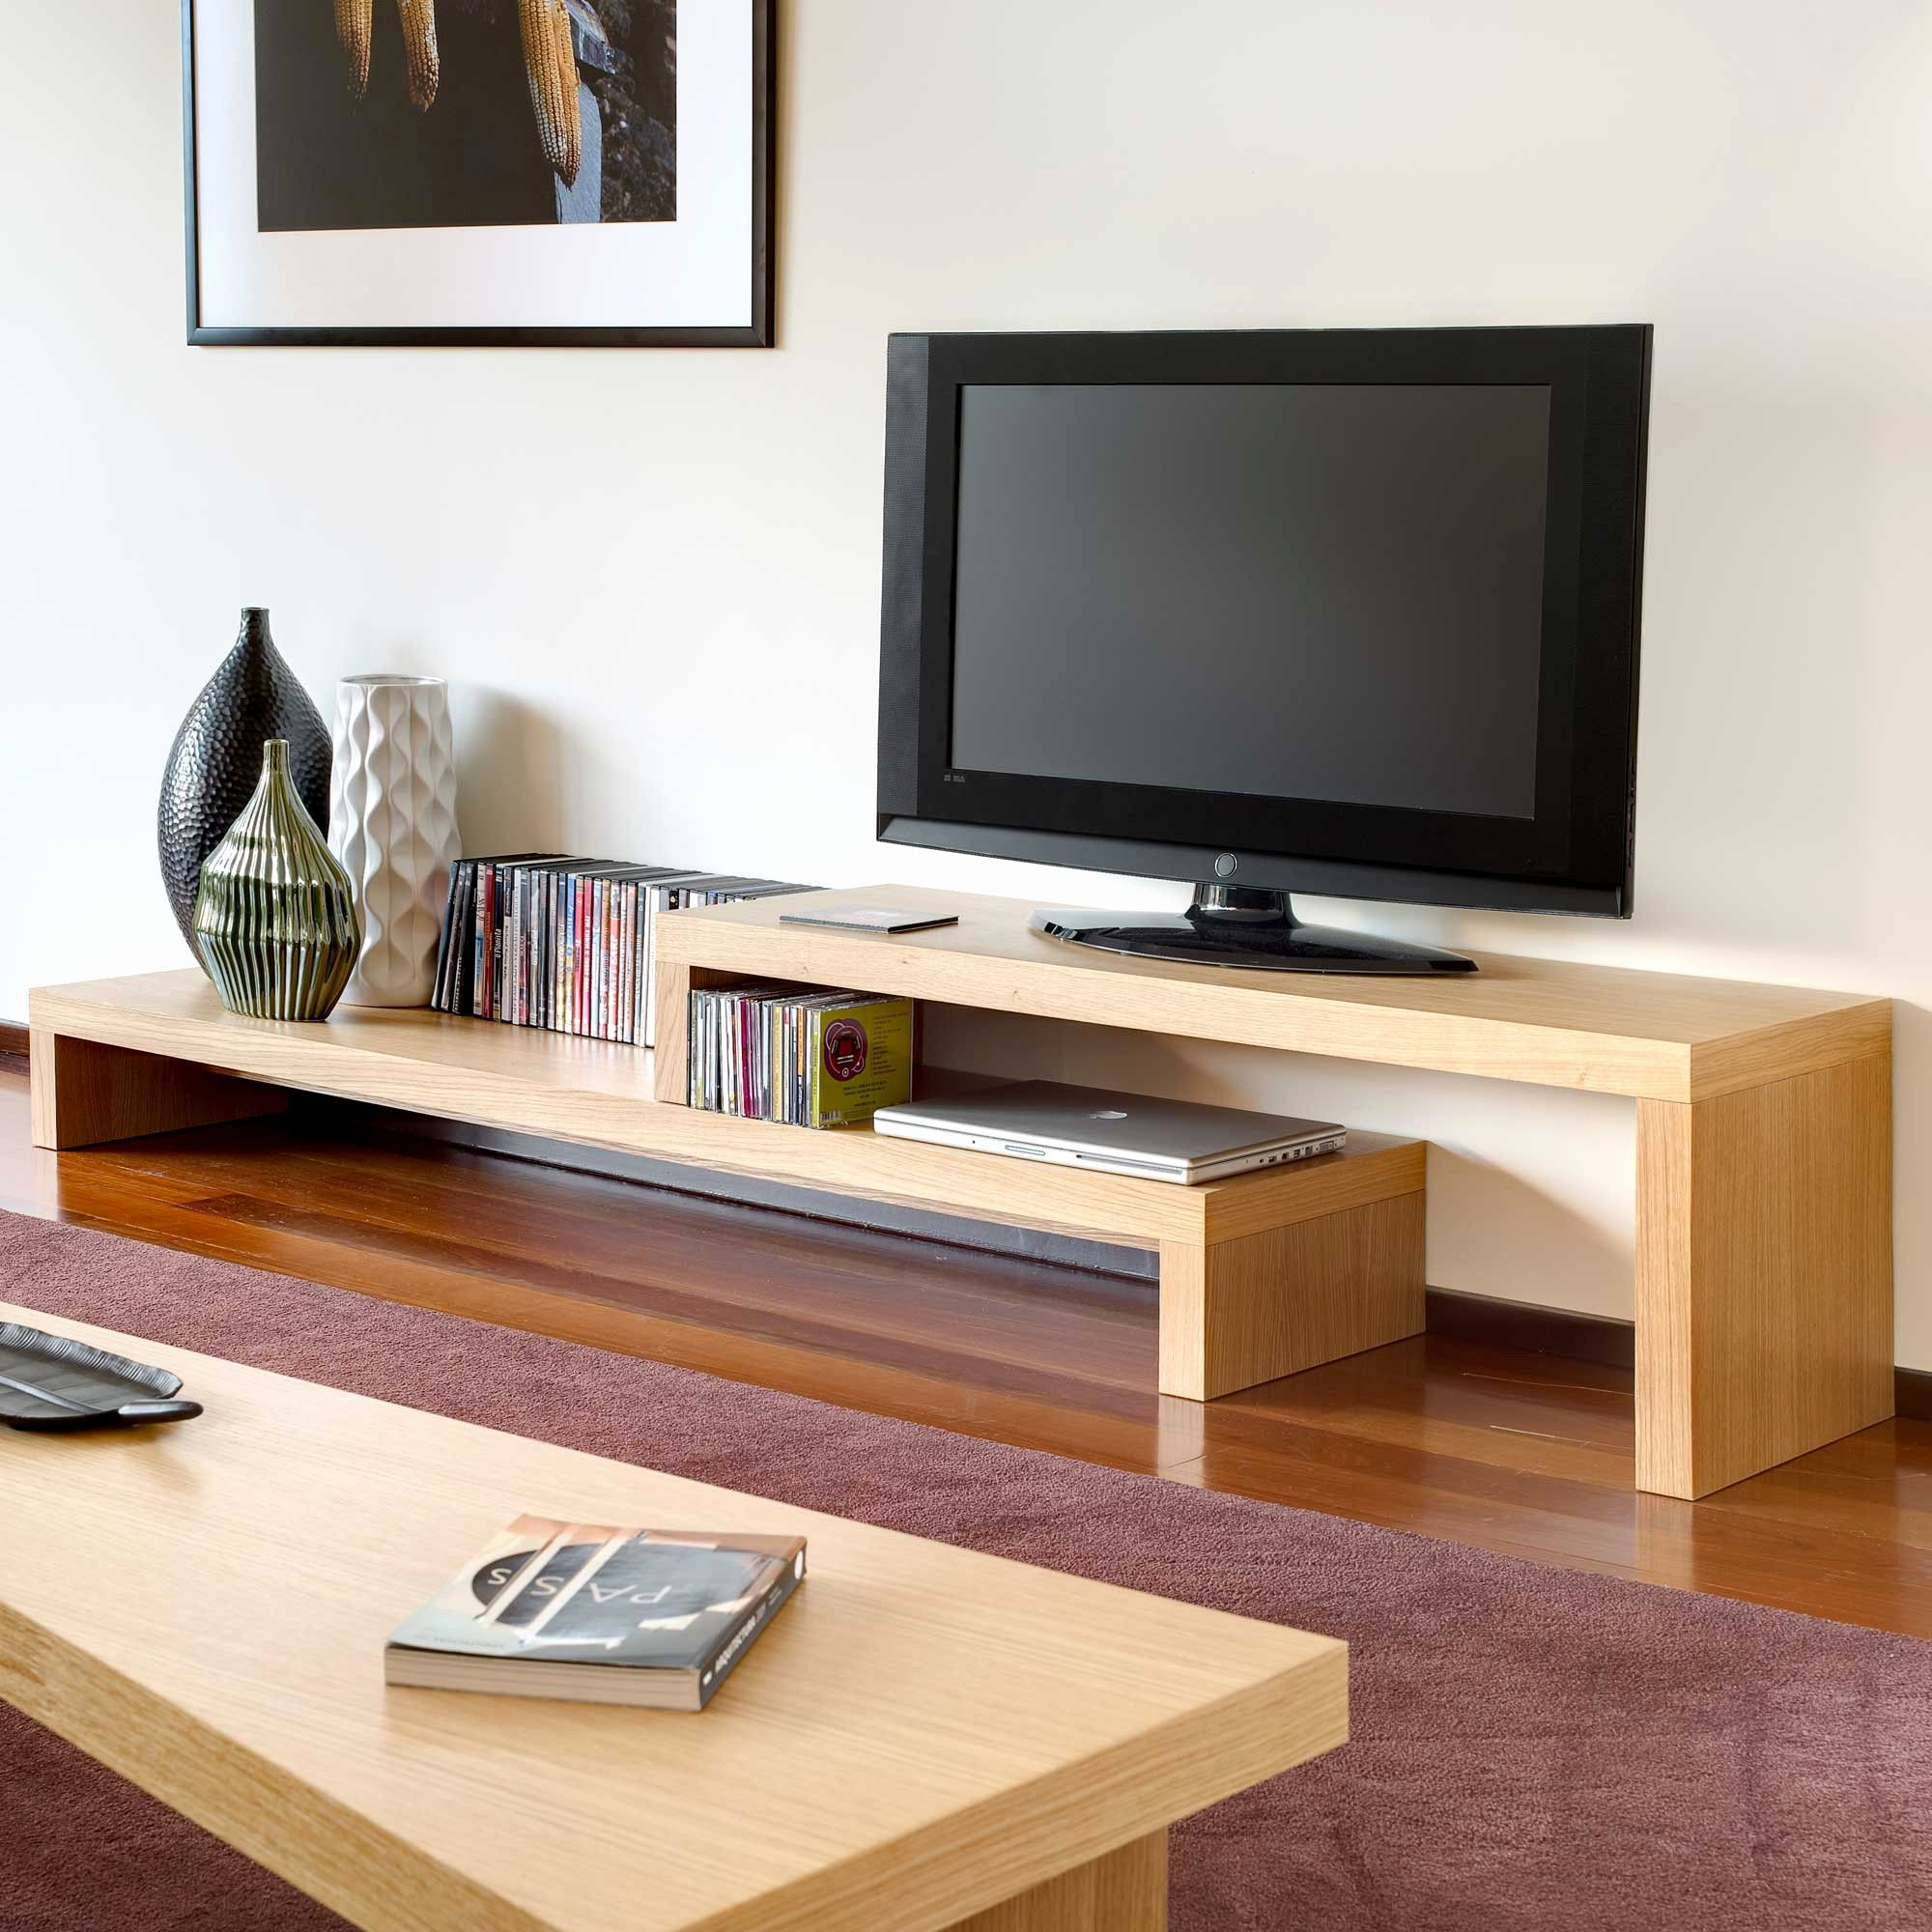 Television Chez Conforama Lovely Television Chez Conforama Beau S Table Tele 4 Meuble Fly Of Best Of Televisio Tv Stand Shelves Wooden Tv Stands Living Room Tv